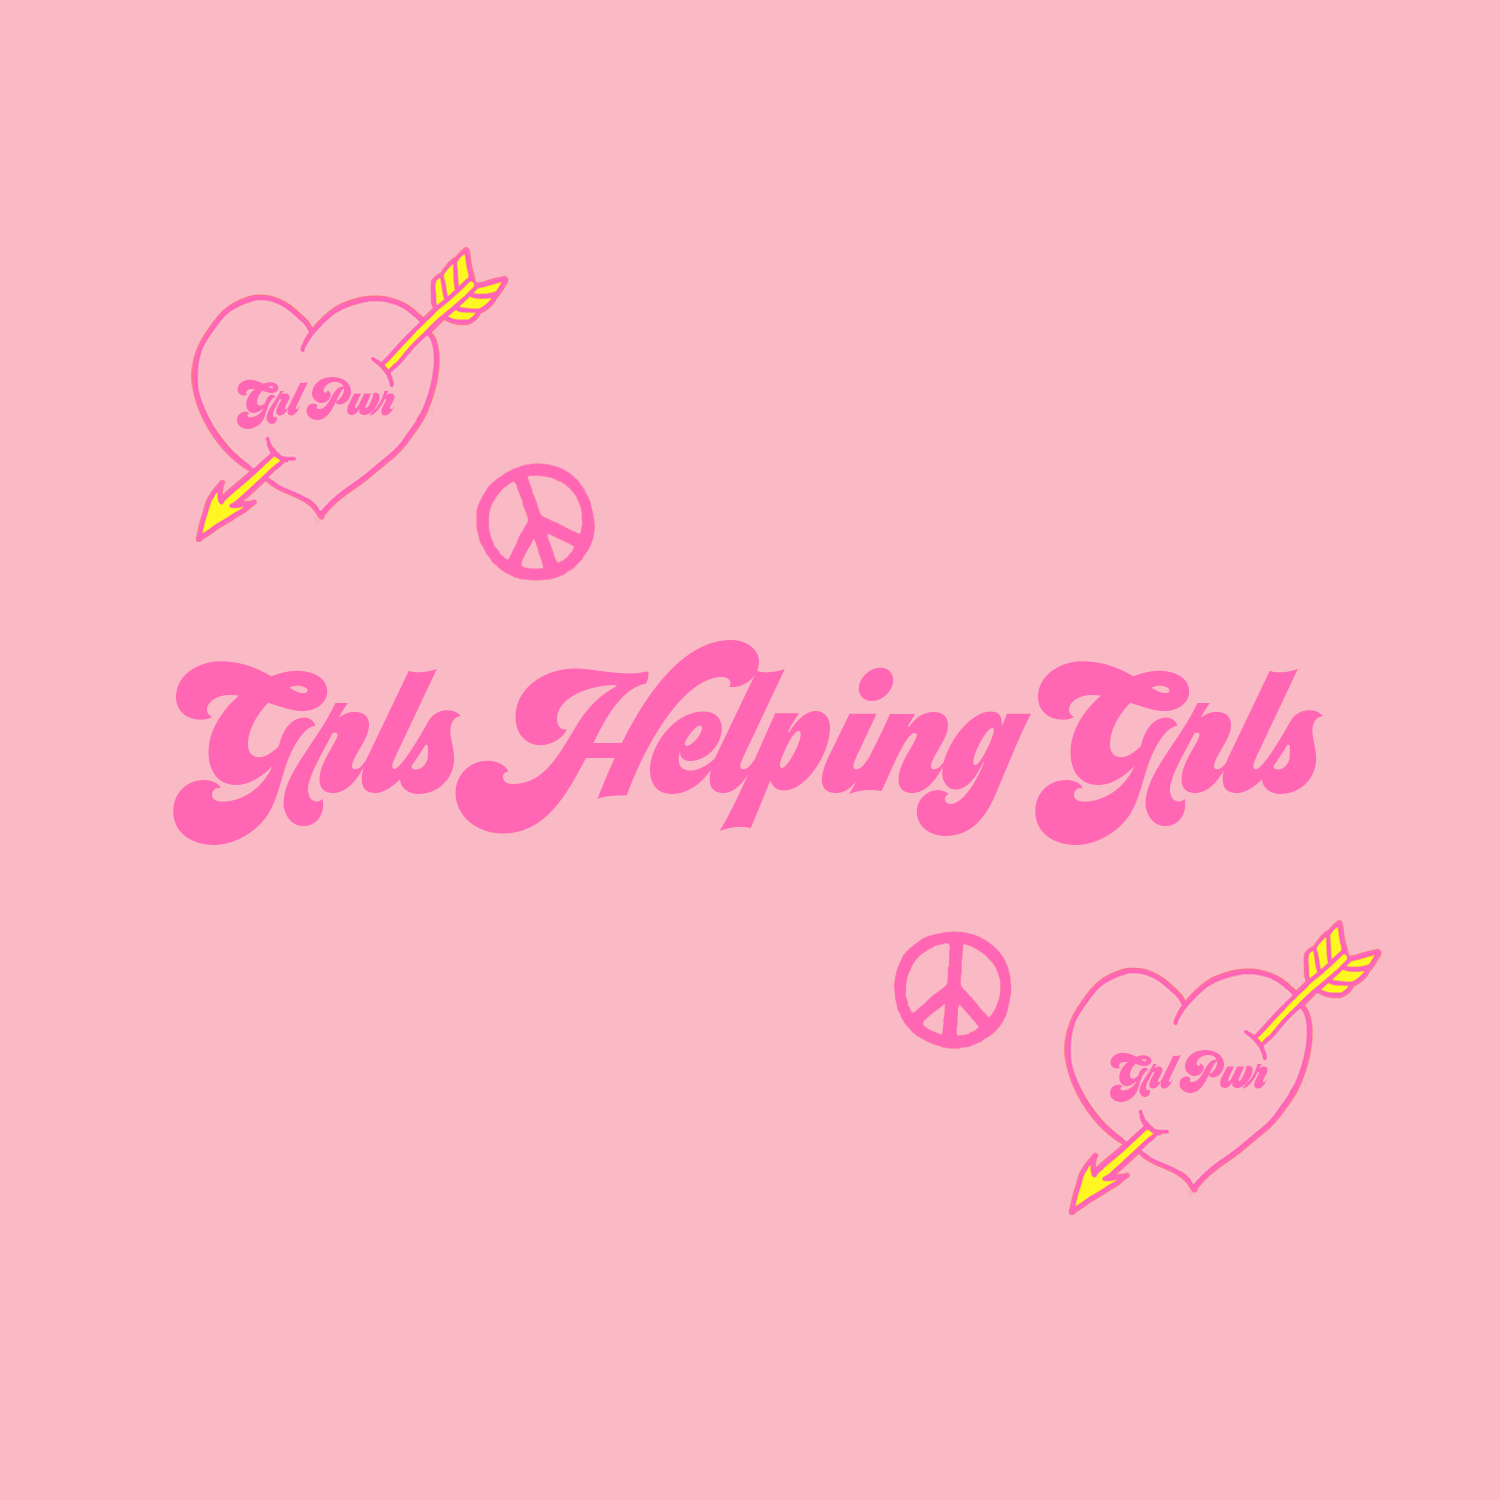 GRLS HELPING GRLS - a community of grls that come together for media networking, creative support, team projects and sharing ideas